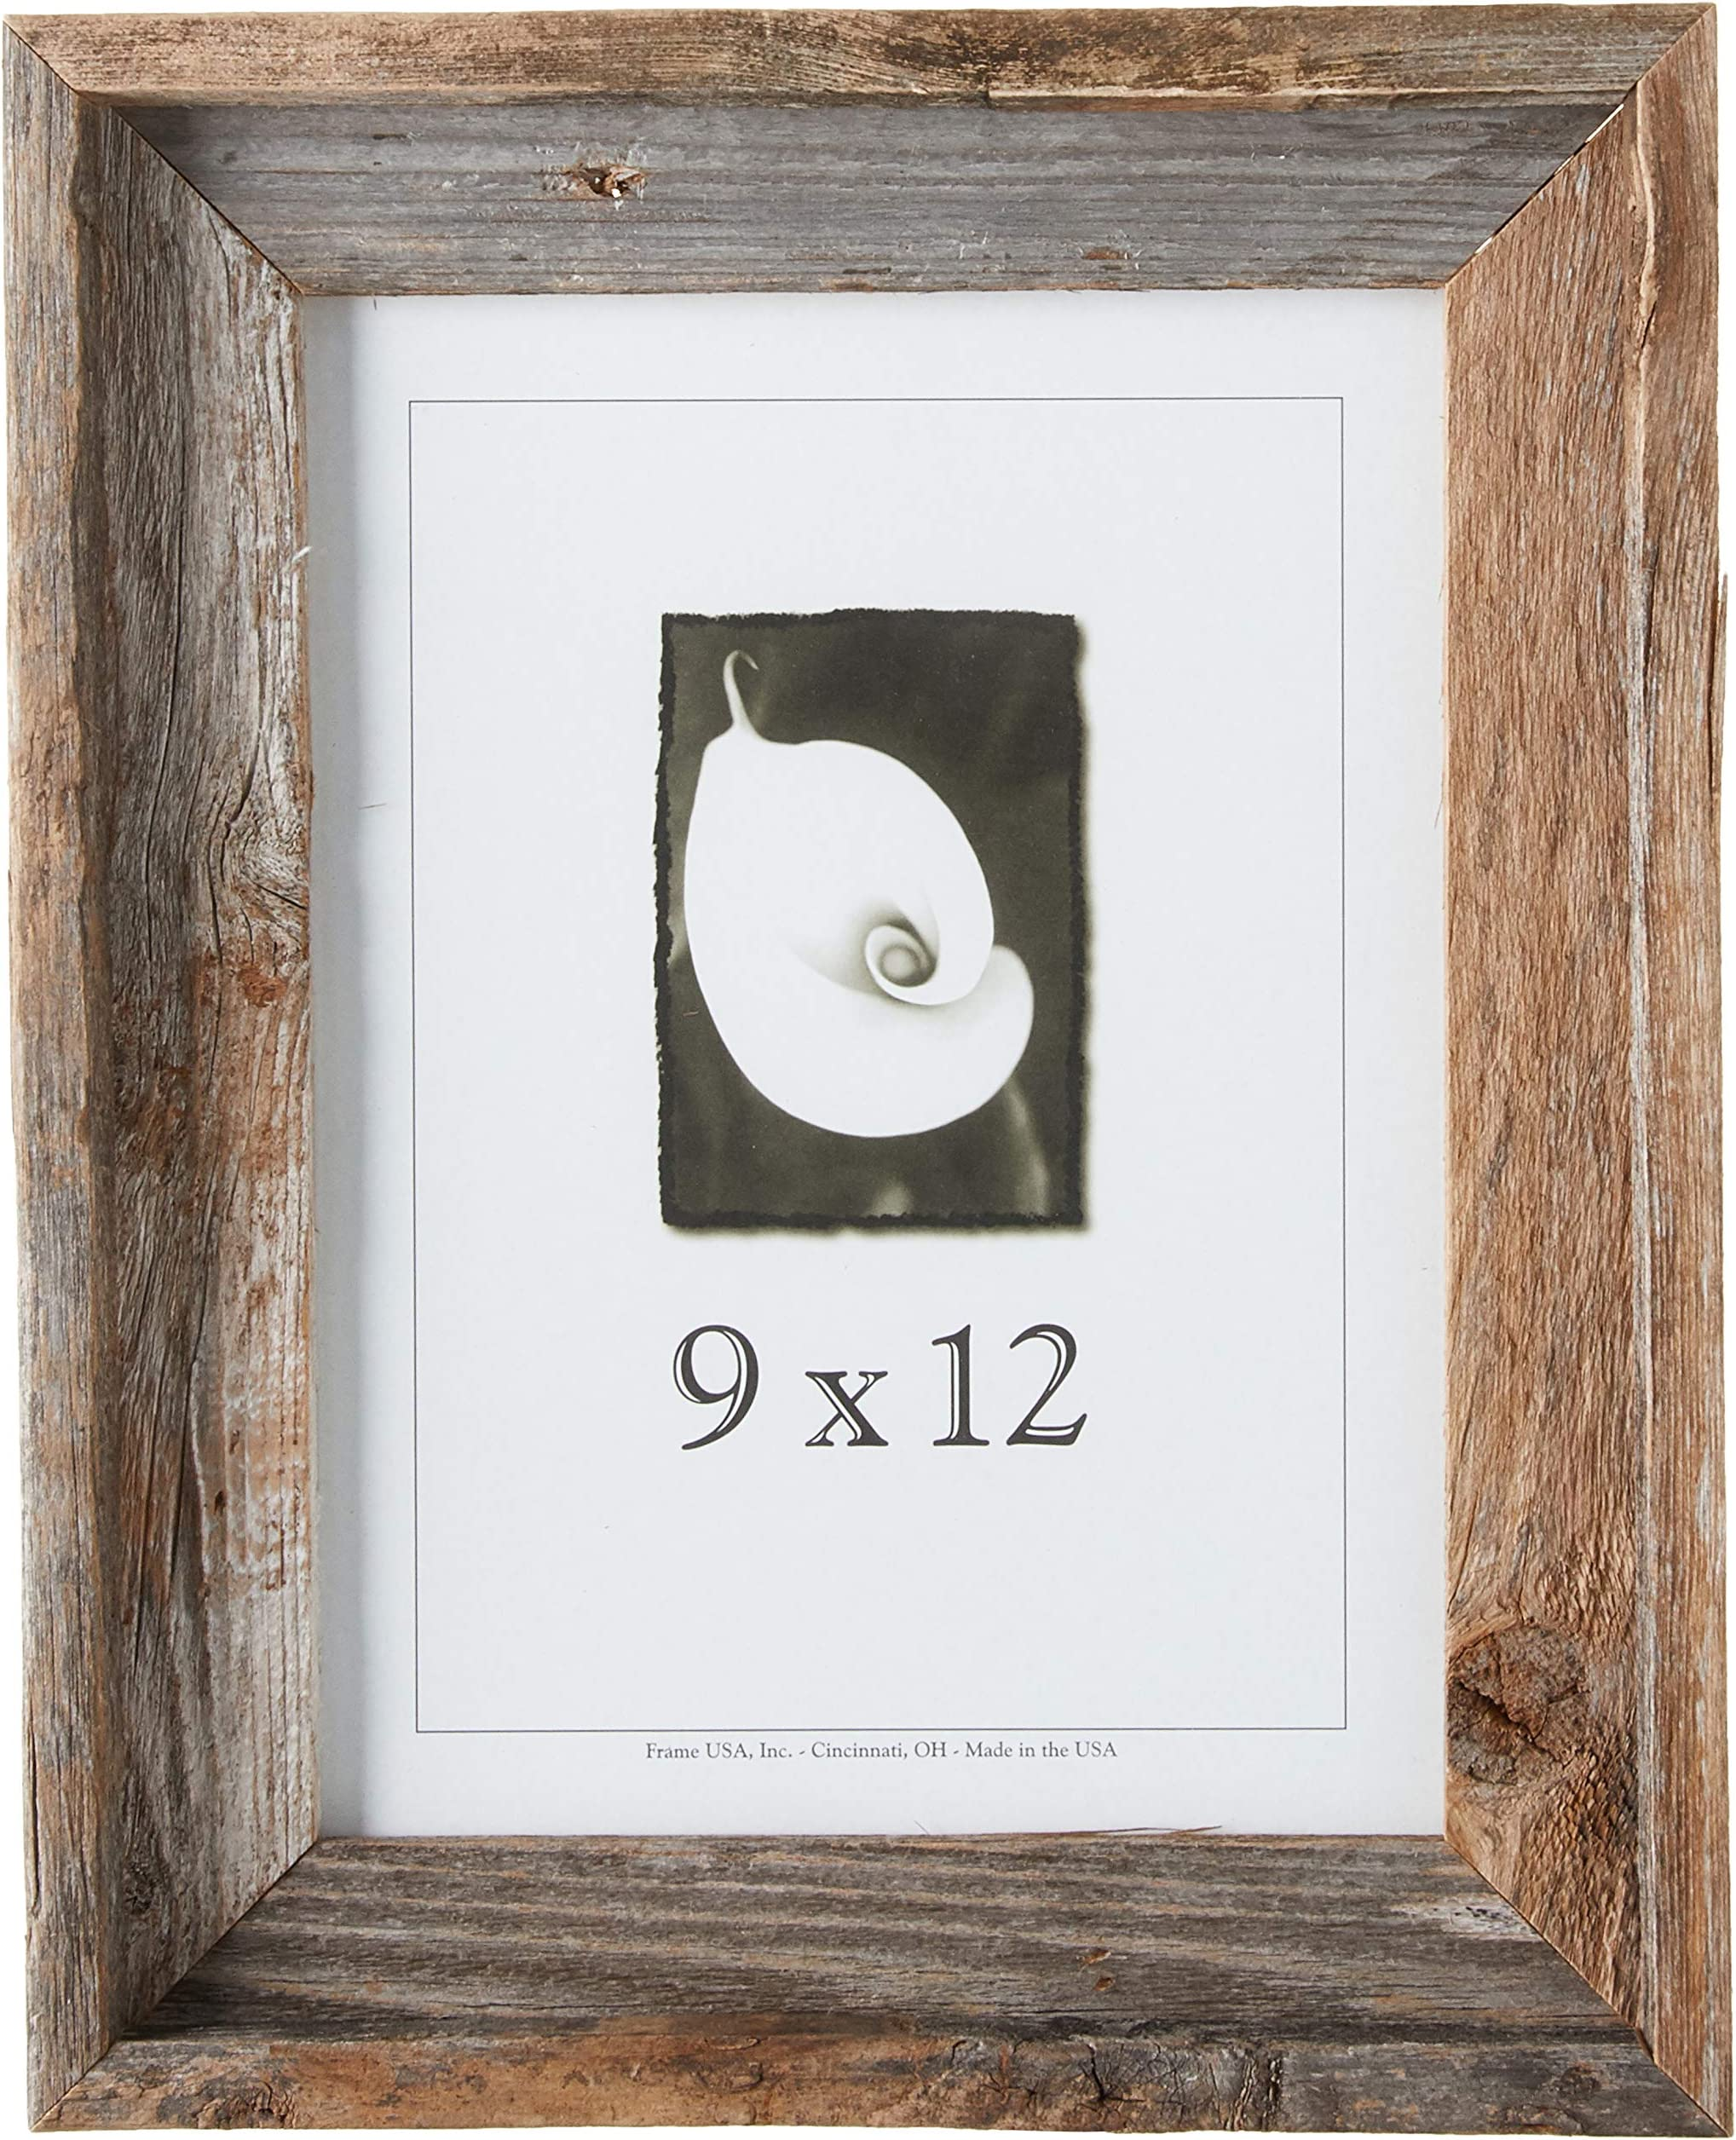 Chic Beach Themed First Birthday Black Photo Mat with Optional Rustic Barnwood Finish Picture Frame Beach Nursery Decor